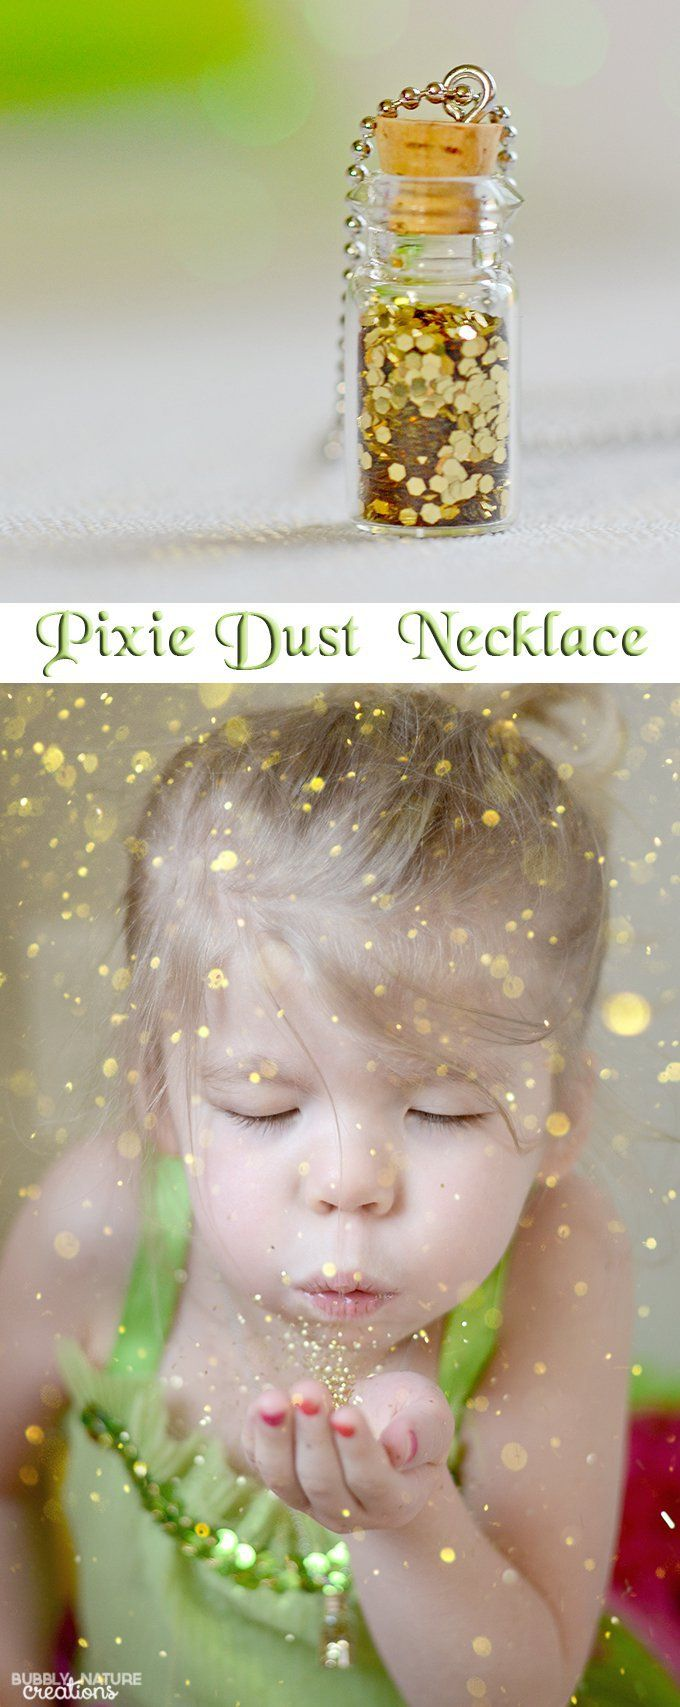 Tinker Bell Pixie Dust Necklace!  copy